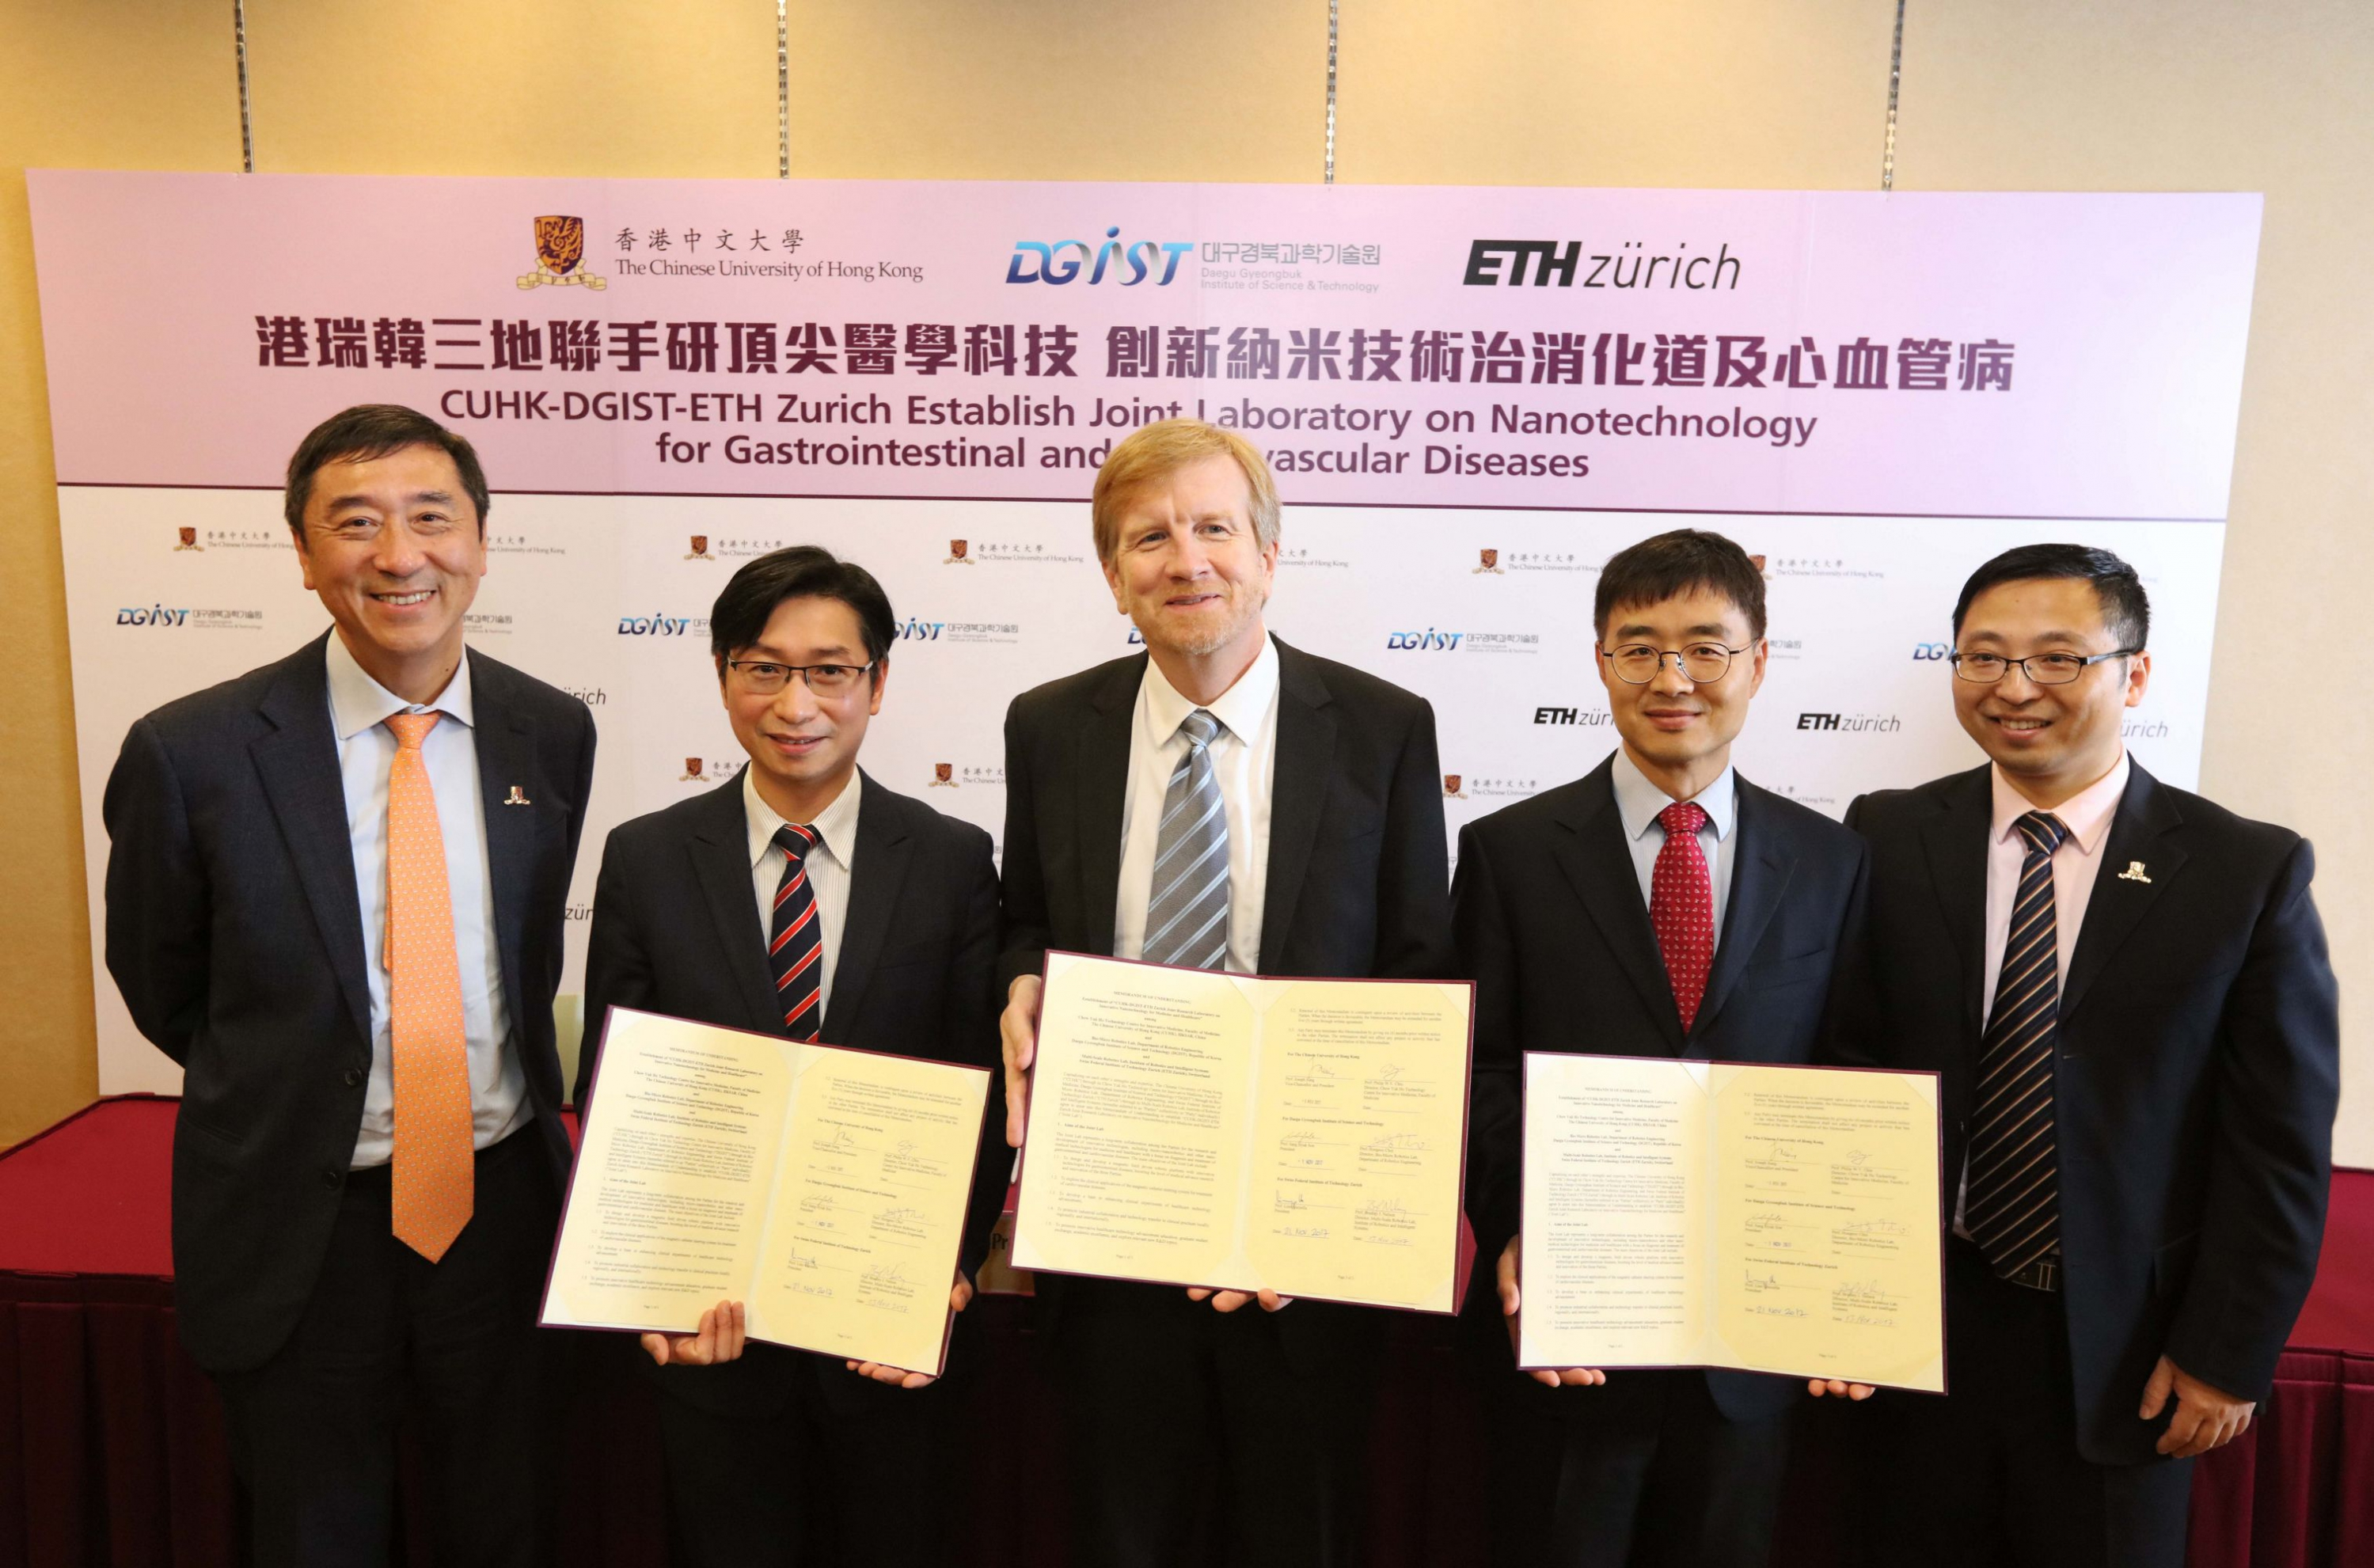 (From left) Prof. Joseph SUNG, Vice-Chancellor and President of CUHK; Prof. Philip CHIU, Director of the Chow Yuk Ho Technology Centre for Innovative Medicine, CUHK; Prof. Dr. Bradley NELSON, Director of the Multi-Scale Robotics Lab, Institute of Robotics and Intelligent Systems, ETH Zurich; Prof. Hongsoo CHOI, Director of the Bio-Micro Robotics Lab, Department of Robotic Engineering, DGIST and Prof. Li ZHANG, Associate Professor, Department of Mechanical and Automation Engineering, CUHK, take a group photo after signing the MOU to establish a Joint Research Laboratory on Innovative Nanotechnologies for Medicine and Healthcare